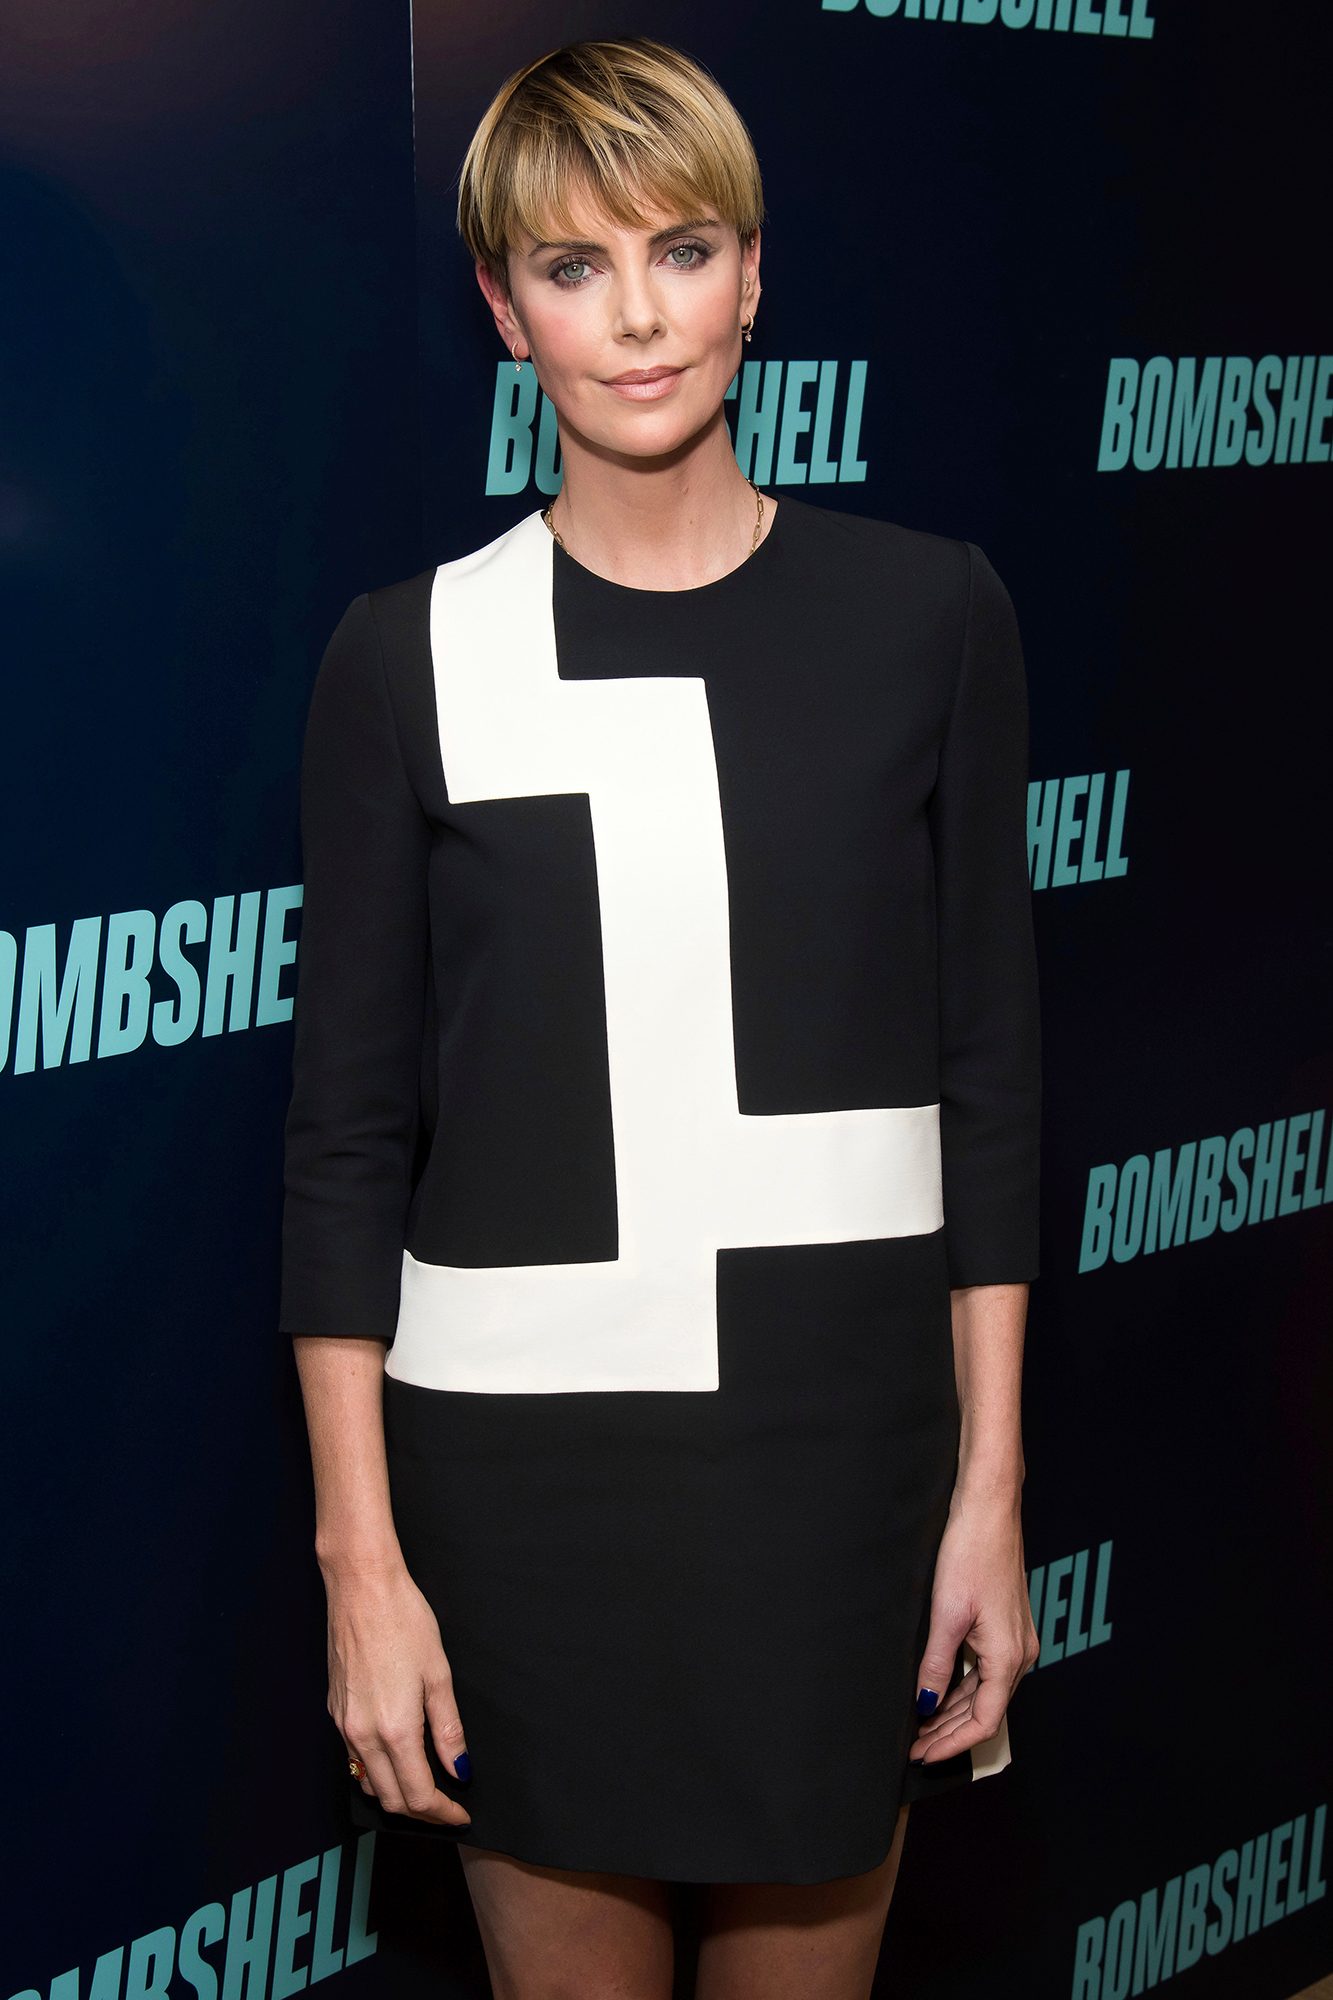 Charlize Theron Never Wanted To Get Married And Plans To Stay Single